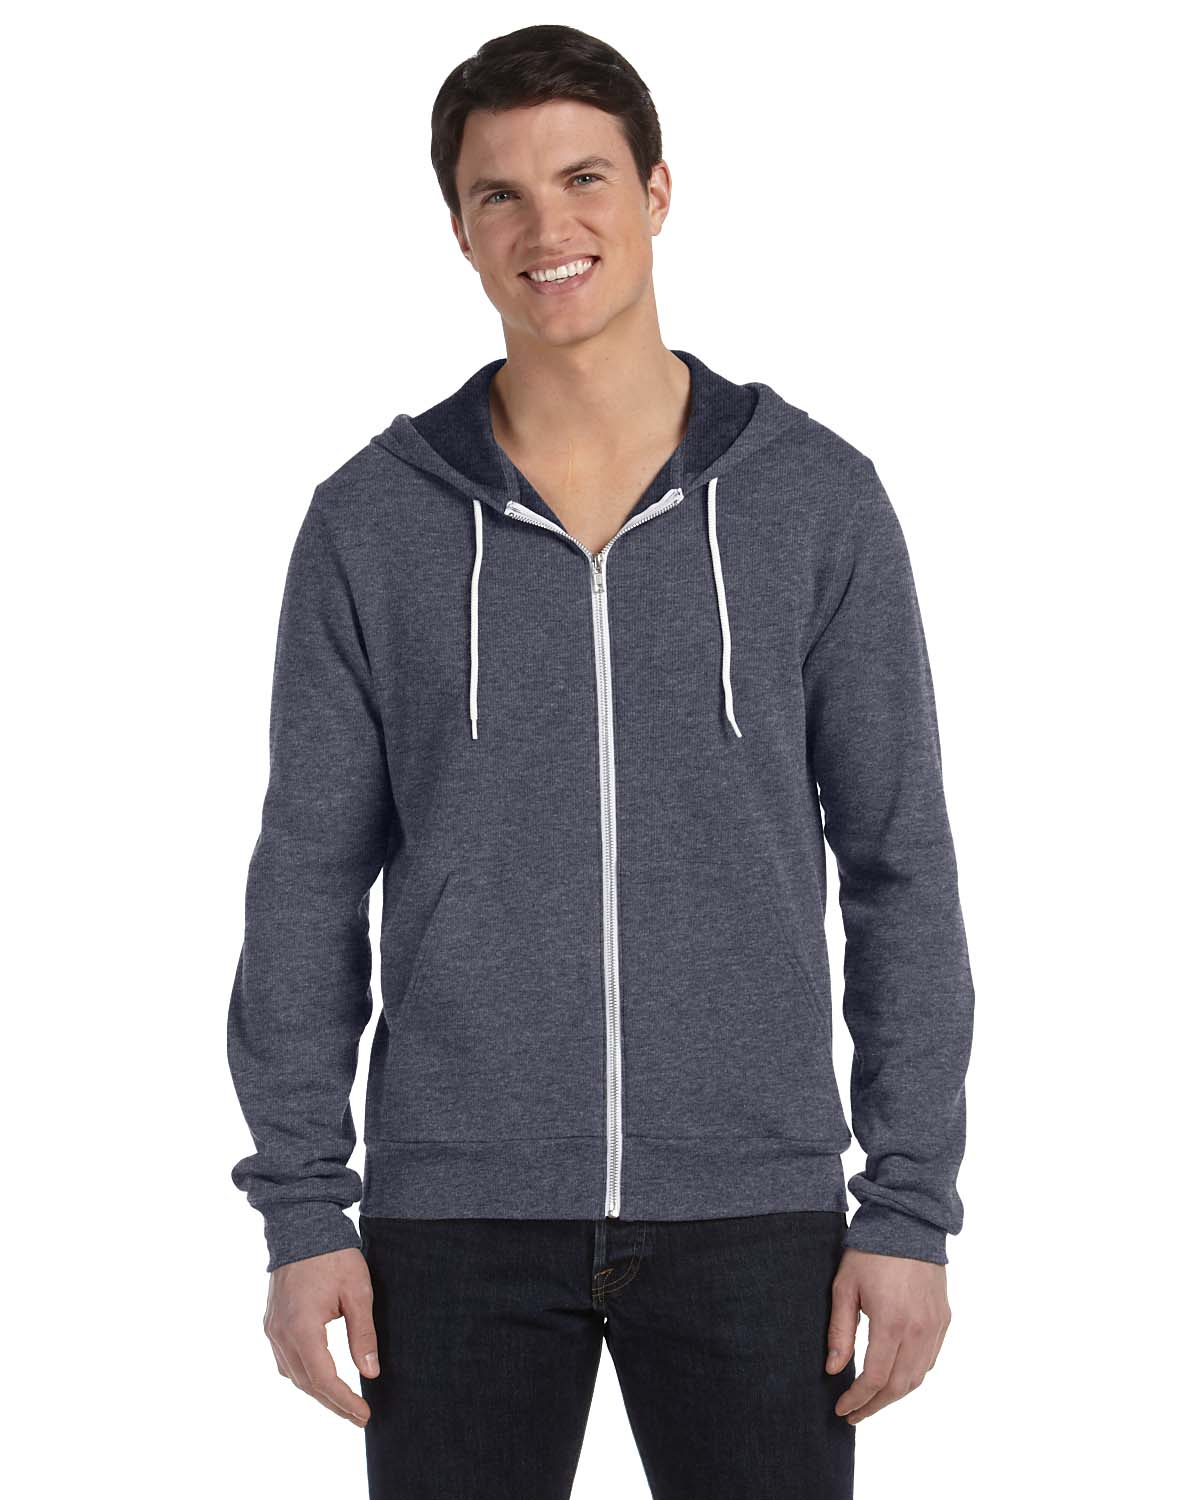 Bella Unisex Poly-Cotton Fleece Full-Zip Hoodie